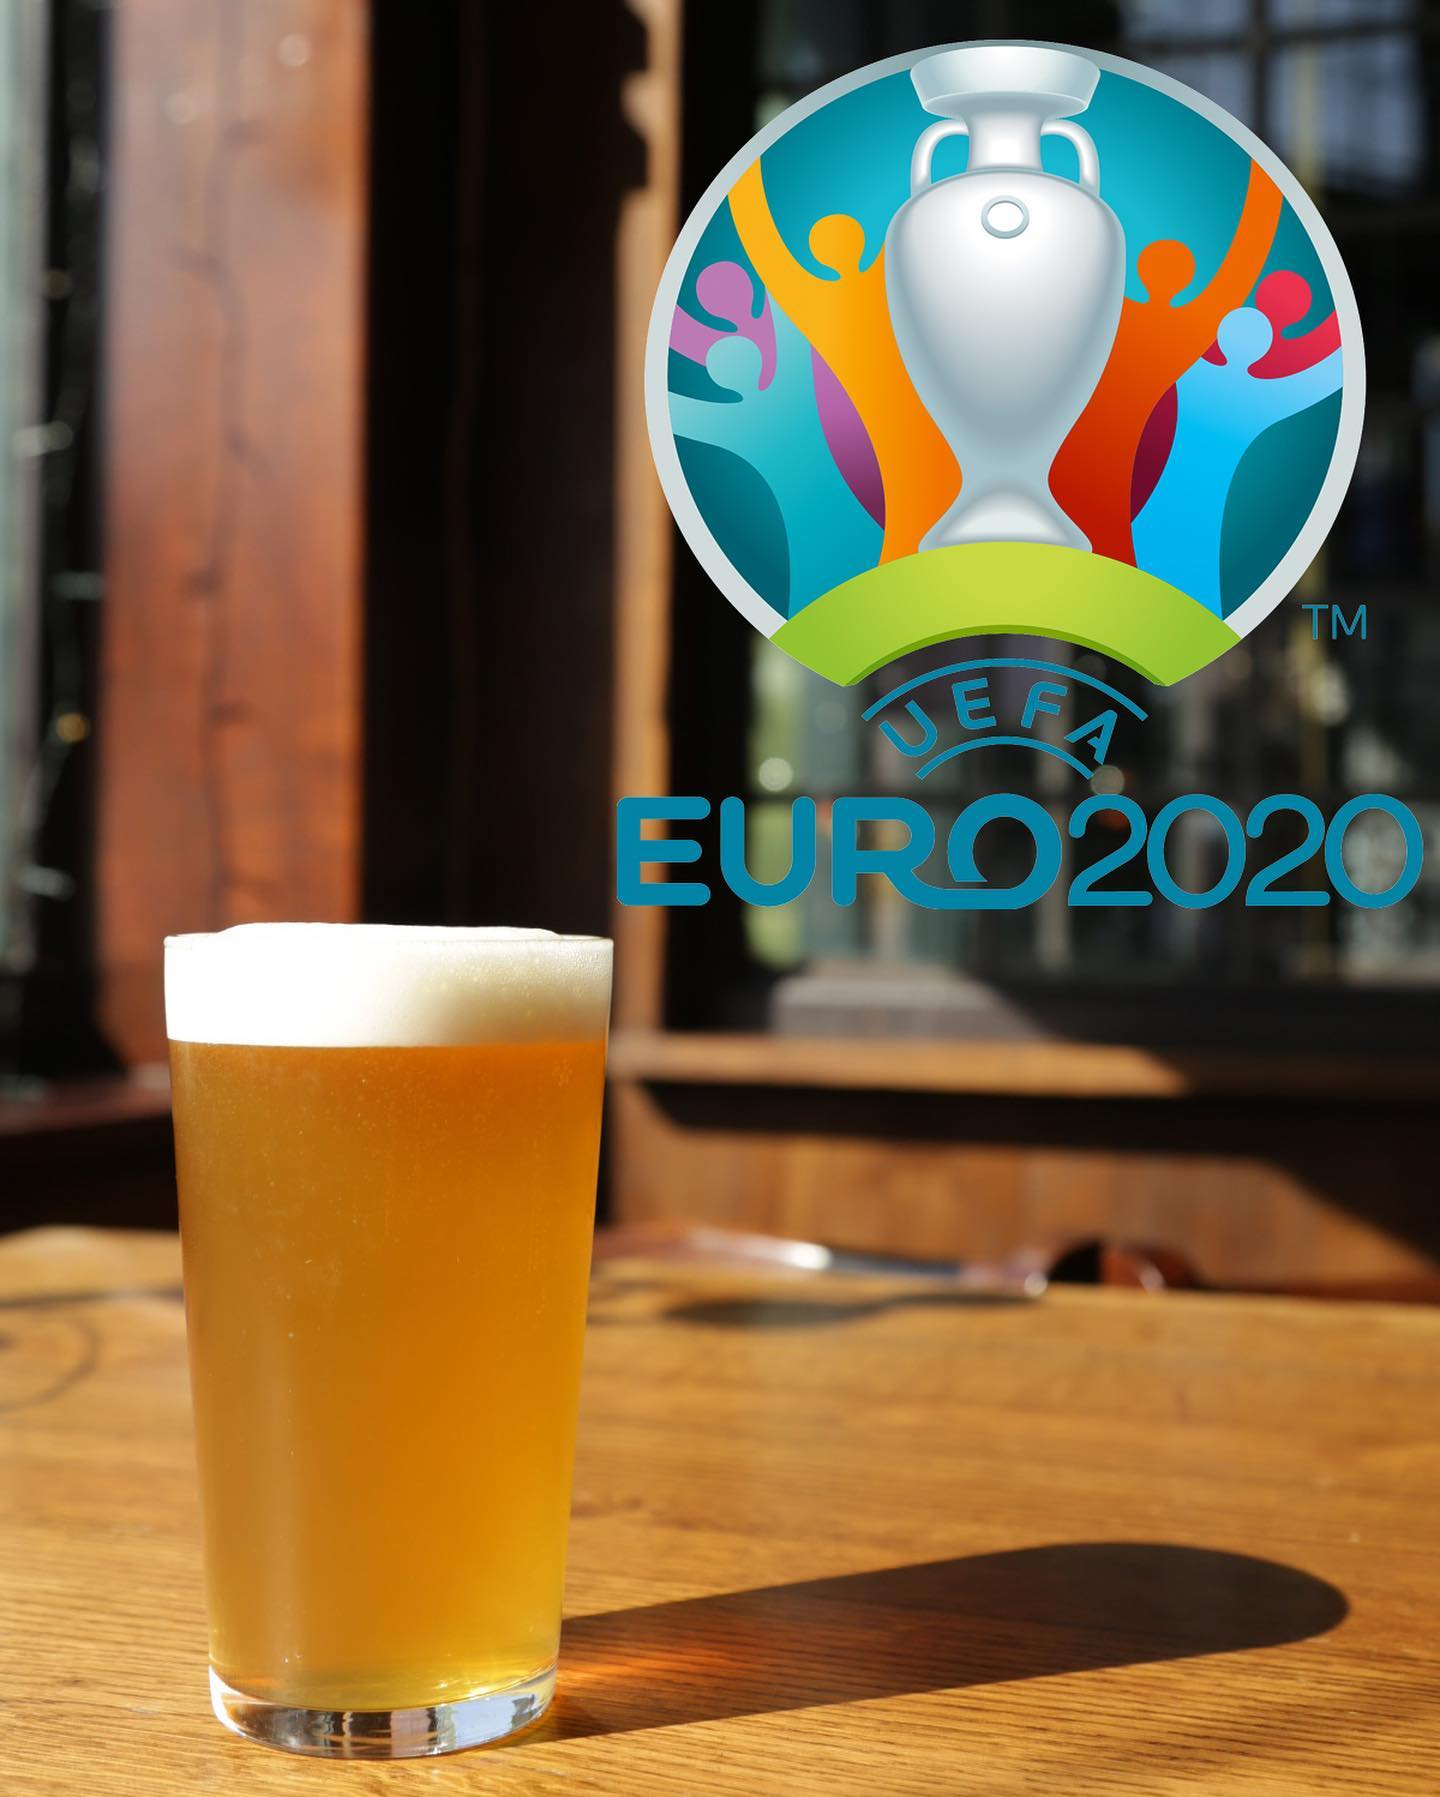 ⚽️THE EUROS!!⚽️  We've had to wait an extra year but the euros have finally arrived! We'll be showing all the England games with full sound around the pub and opening up our 1st floor bar so everyone can come and enjoy the game!   Good friends, good food, cold pints and a summer of football, what more could you want?   Head to our website to book a table ahead of game day!    #euros #euros2021 #football #thealpaca #islington #islingtonlife #angel #essexroad #supportlocal #pub #pints #london #londonpubs #pubsoflondon #beer #goodnessbeer #craft #ipa